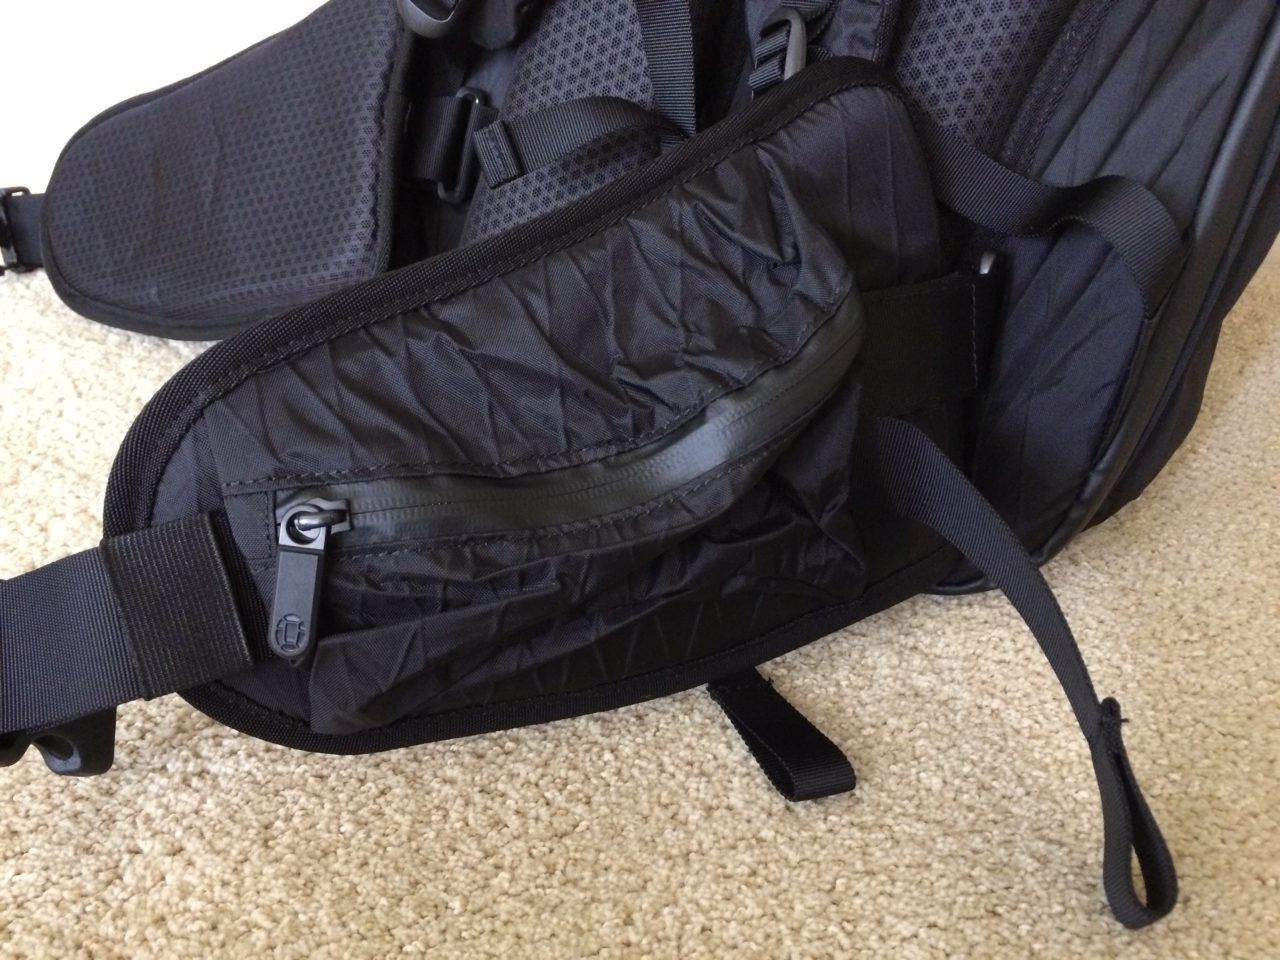 The Tortuga Outbreaker Backpack, thoroughly reviewed